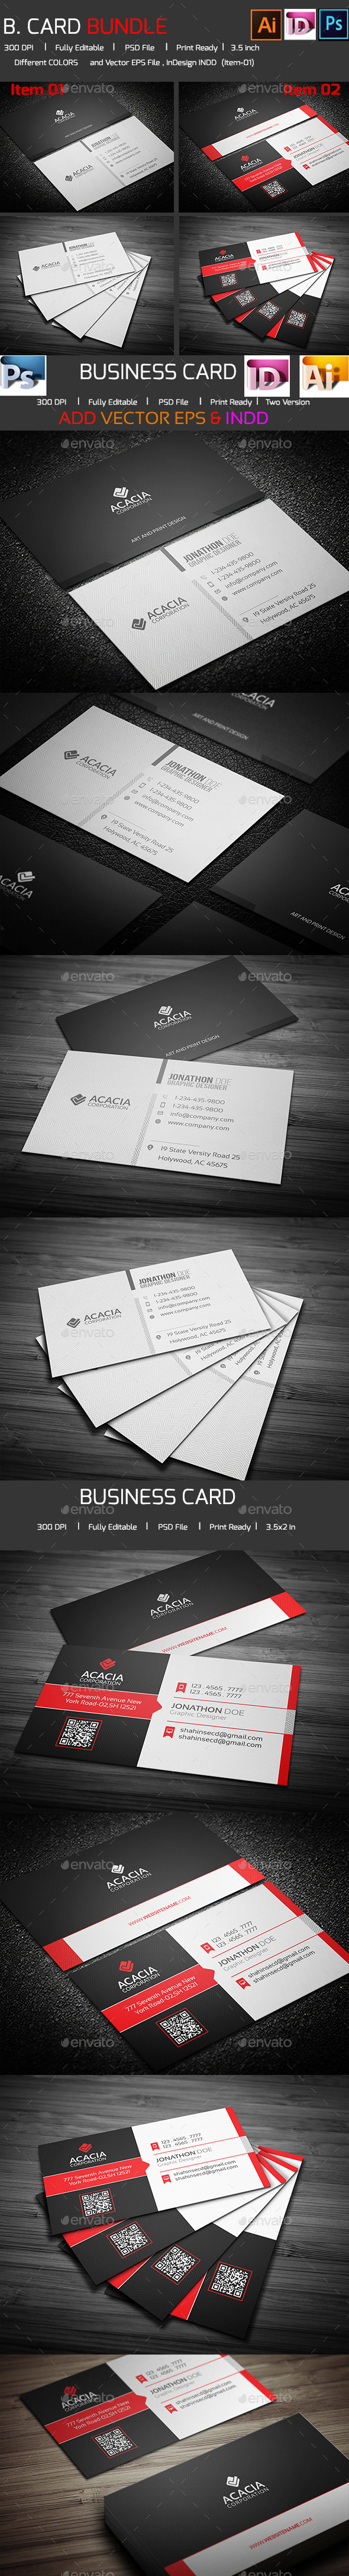 Bundle- 2 in 1 Business Card_04 - Corporate Business Cards